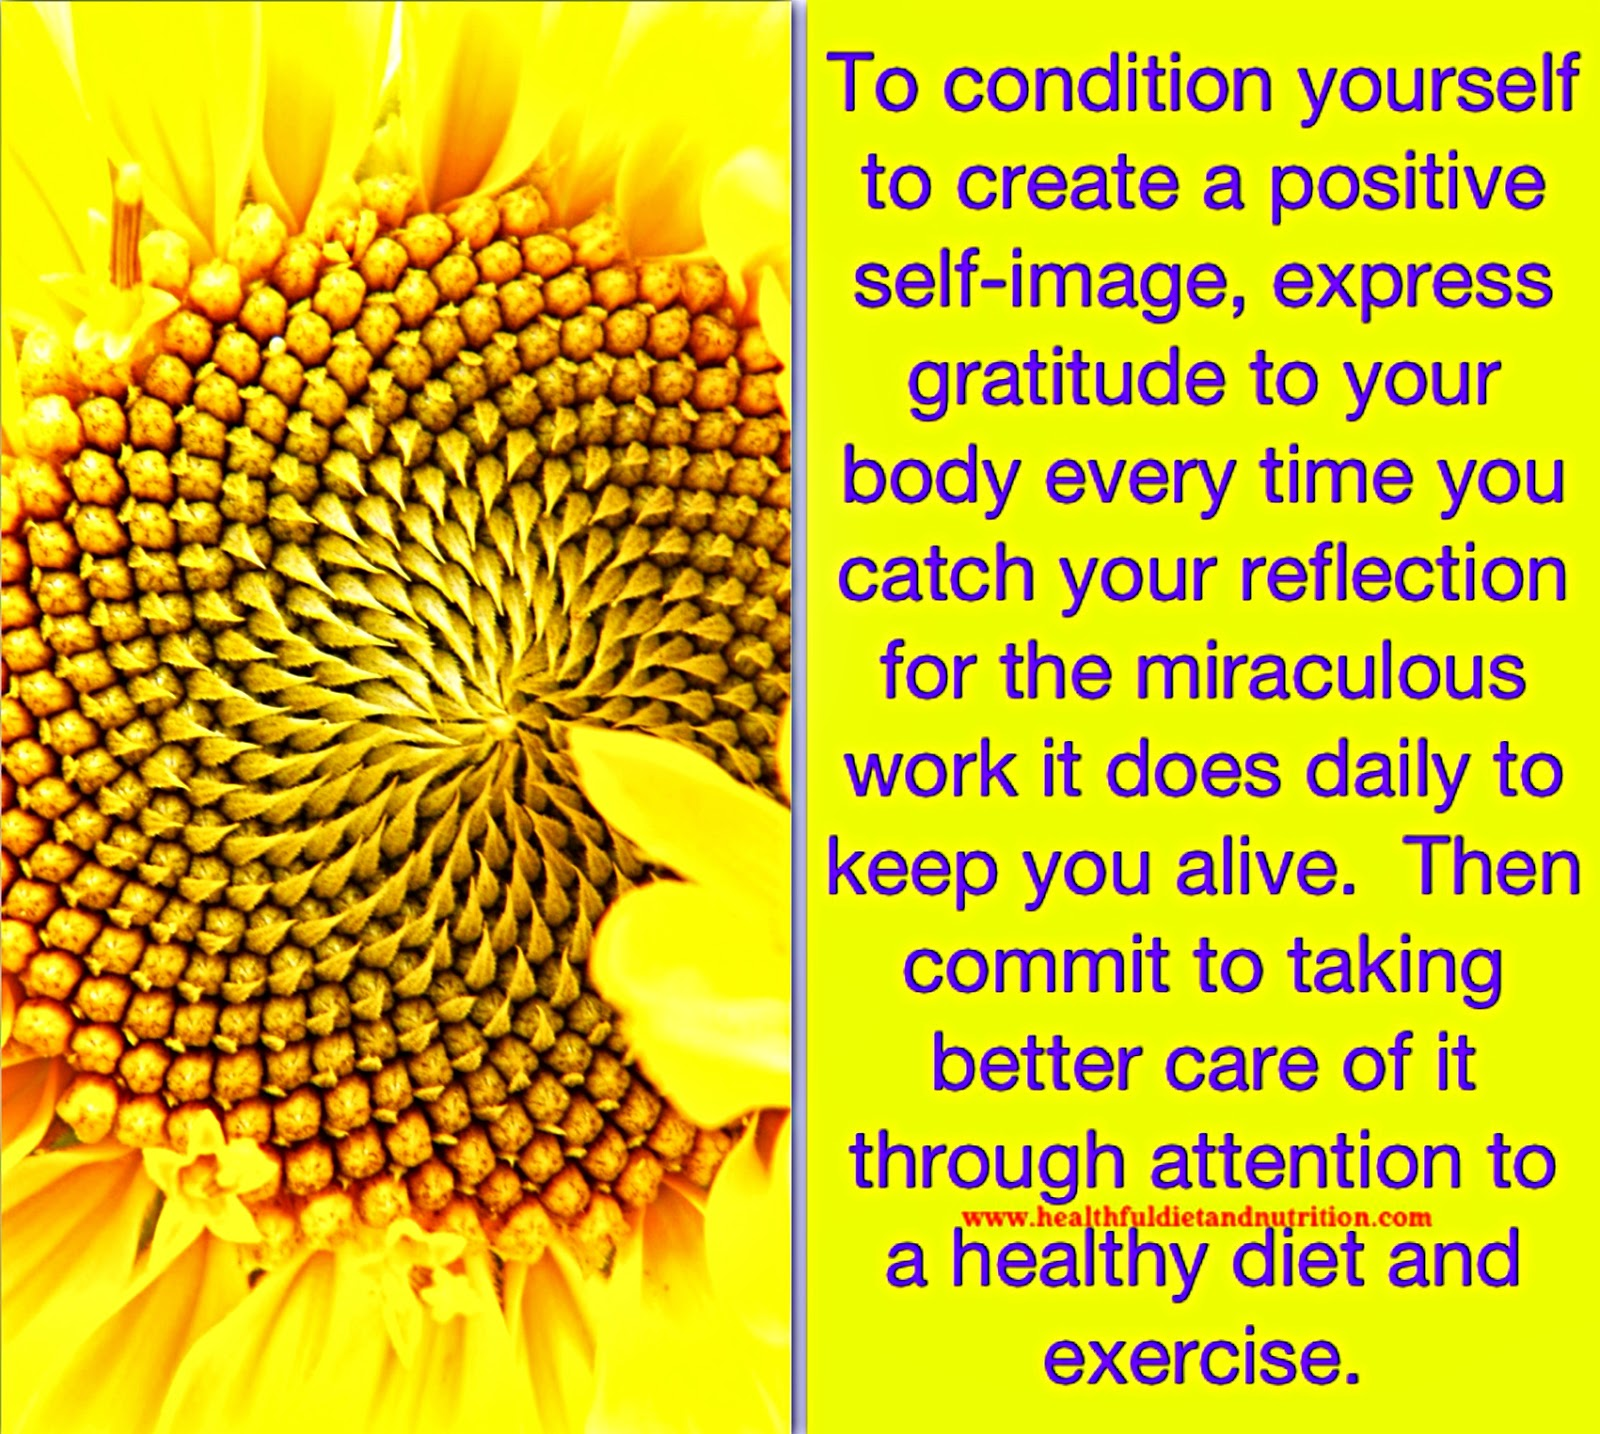 Condition Yourself To Create A Positive Self-Image